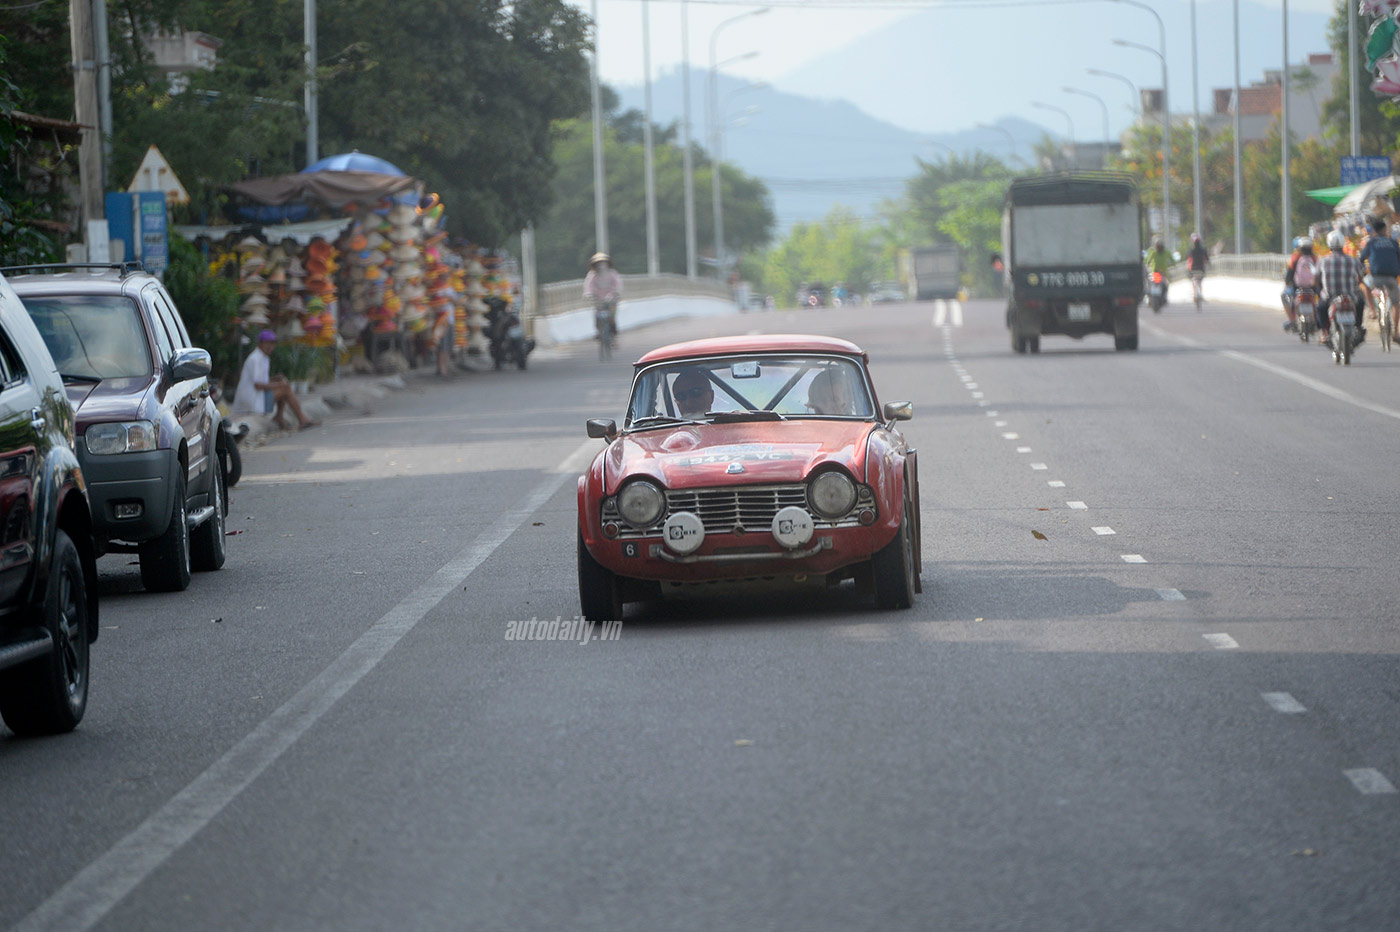 the-road-to-saigon-024.jpg